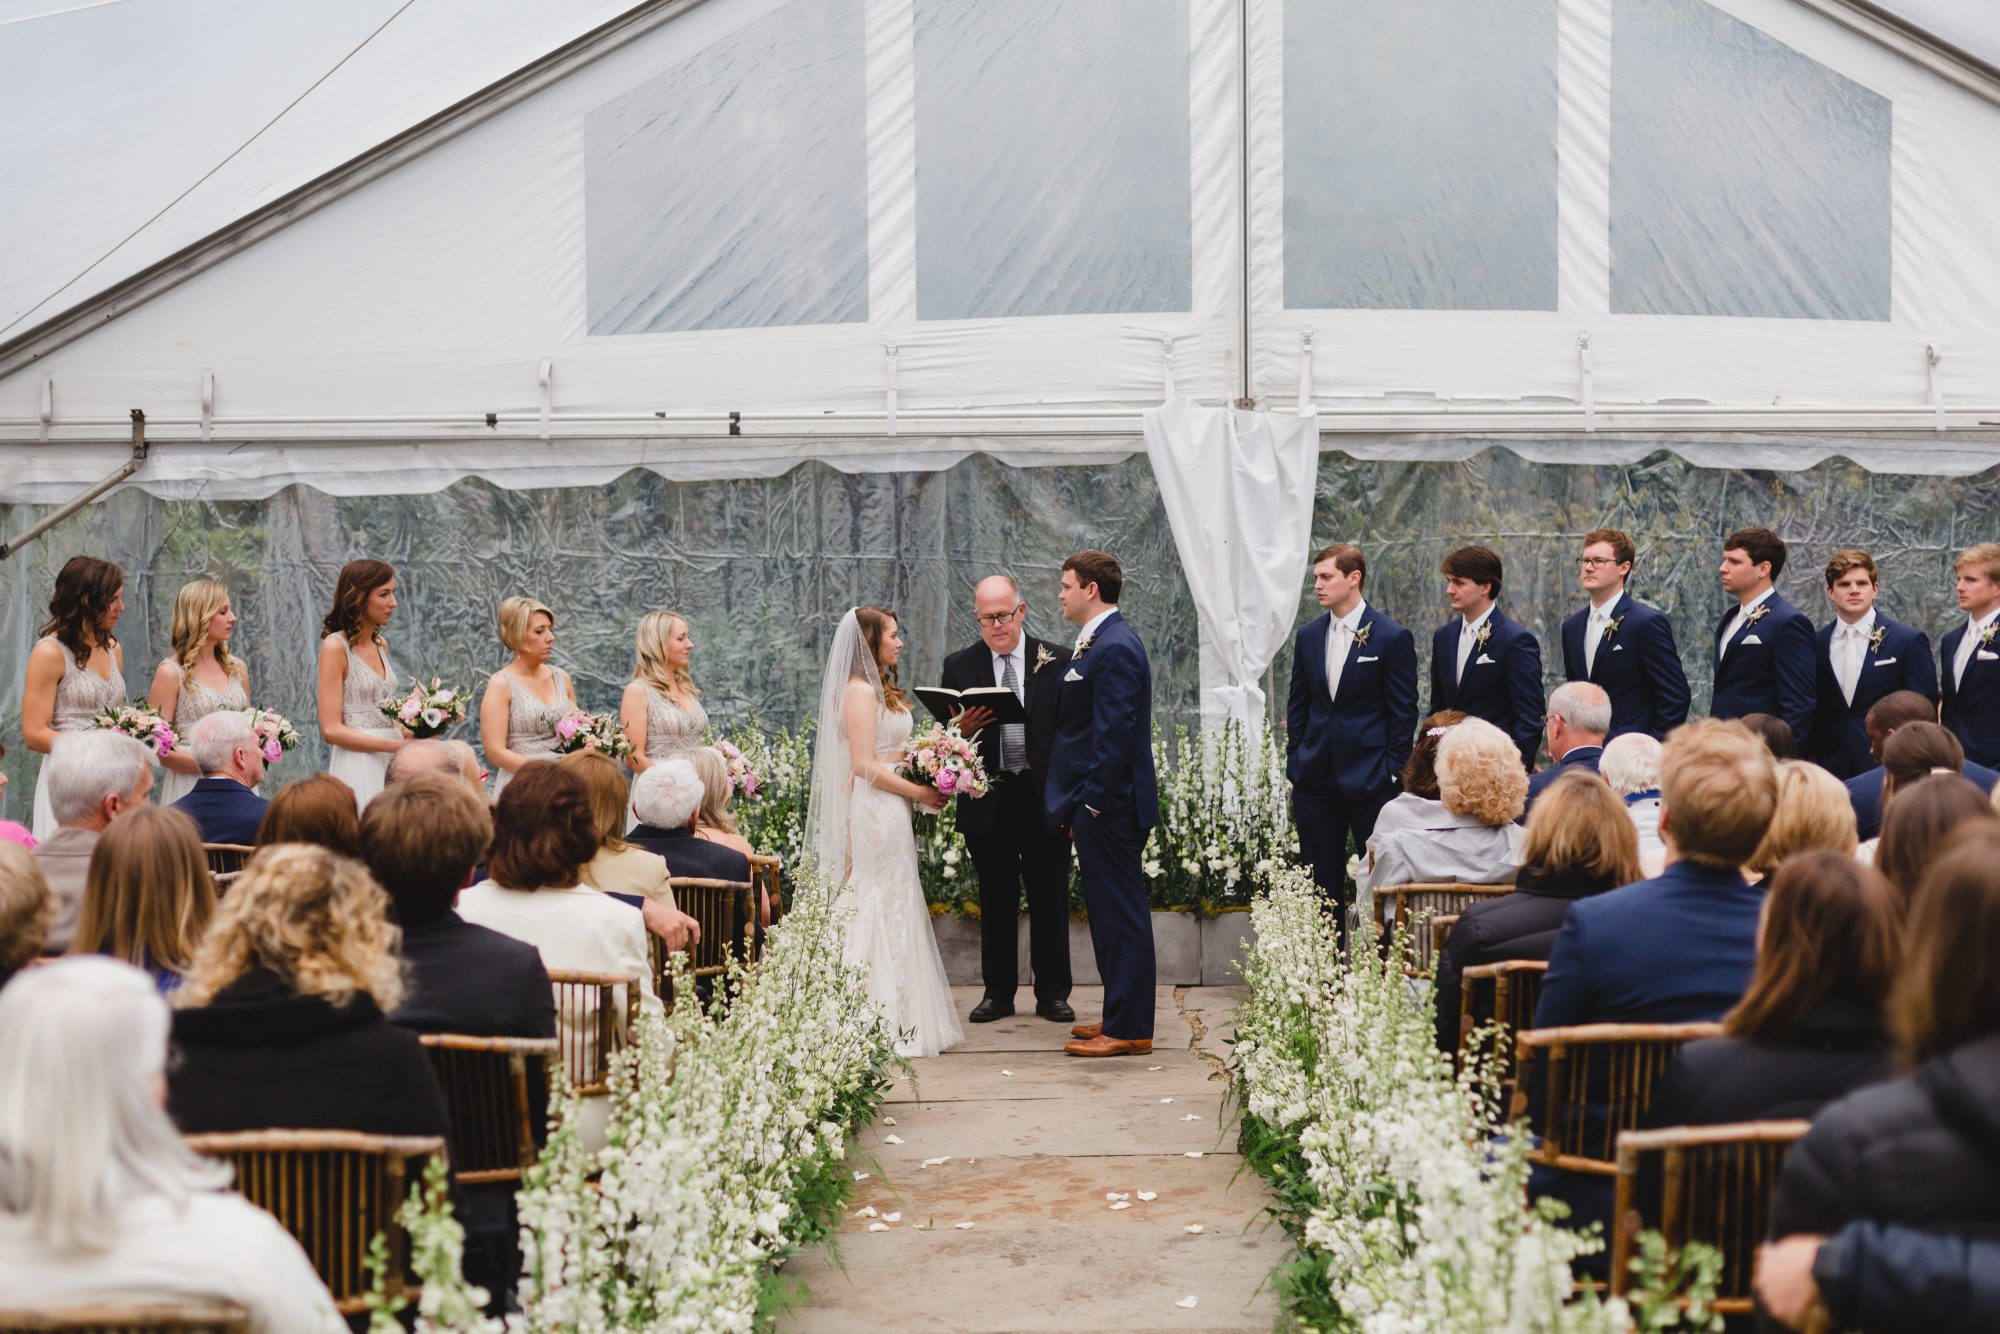 Rainy Wedding Ceremony Tent